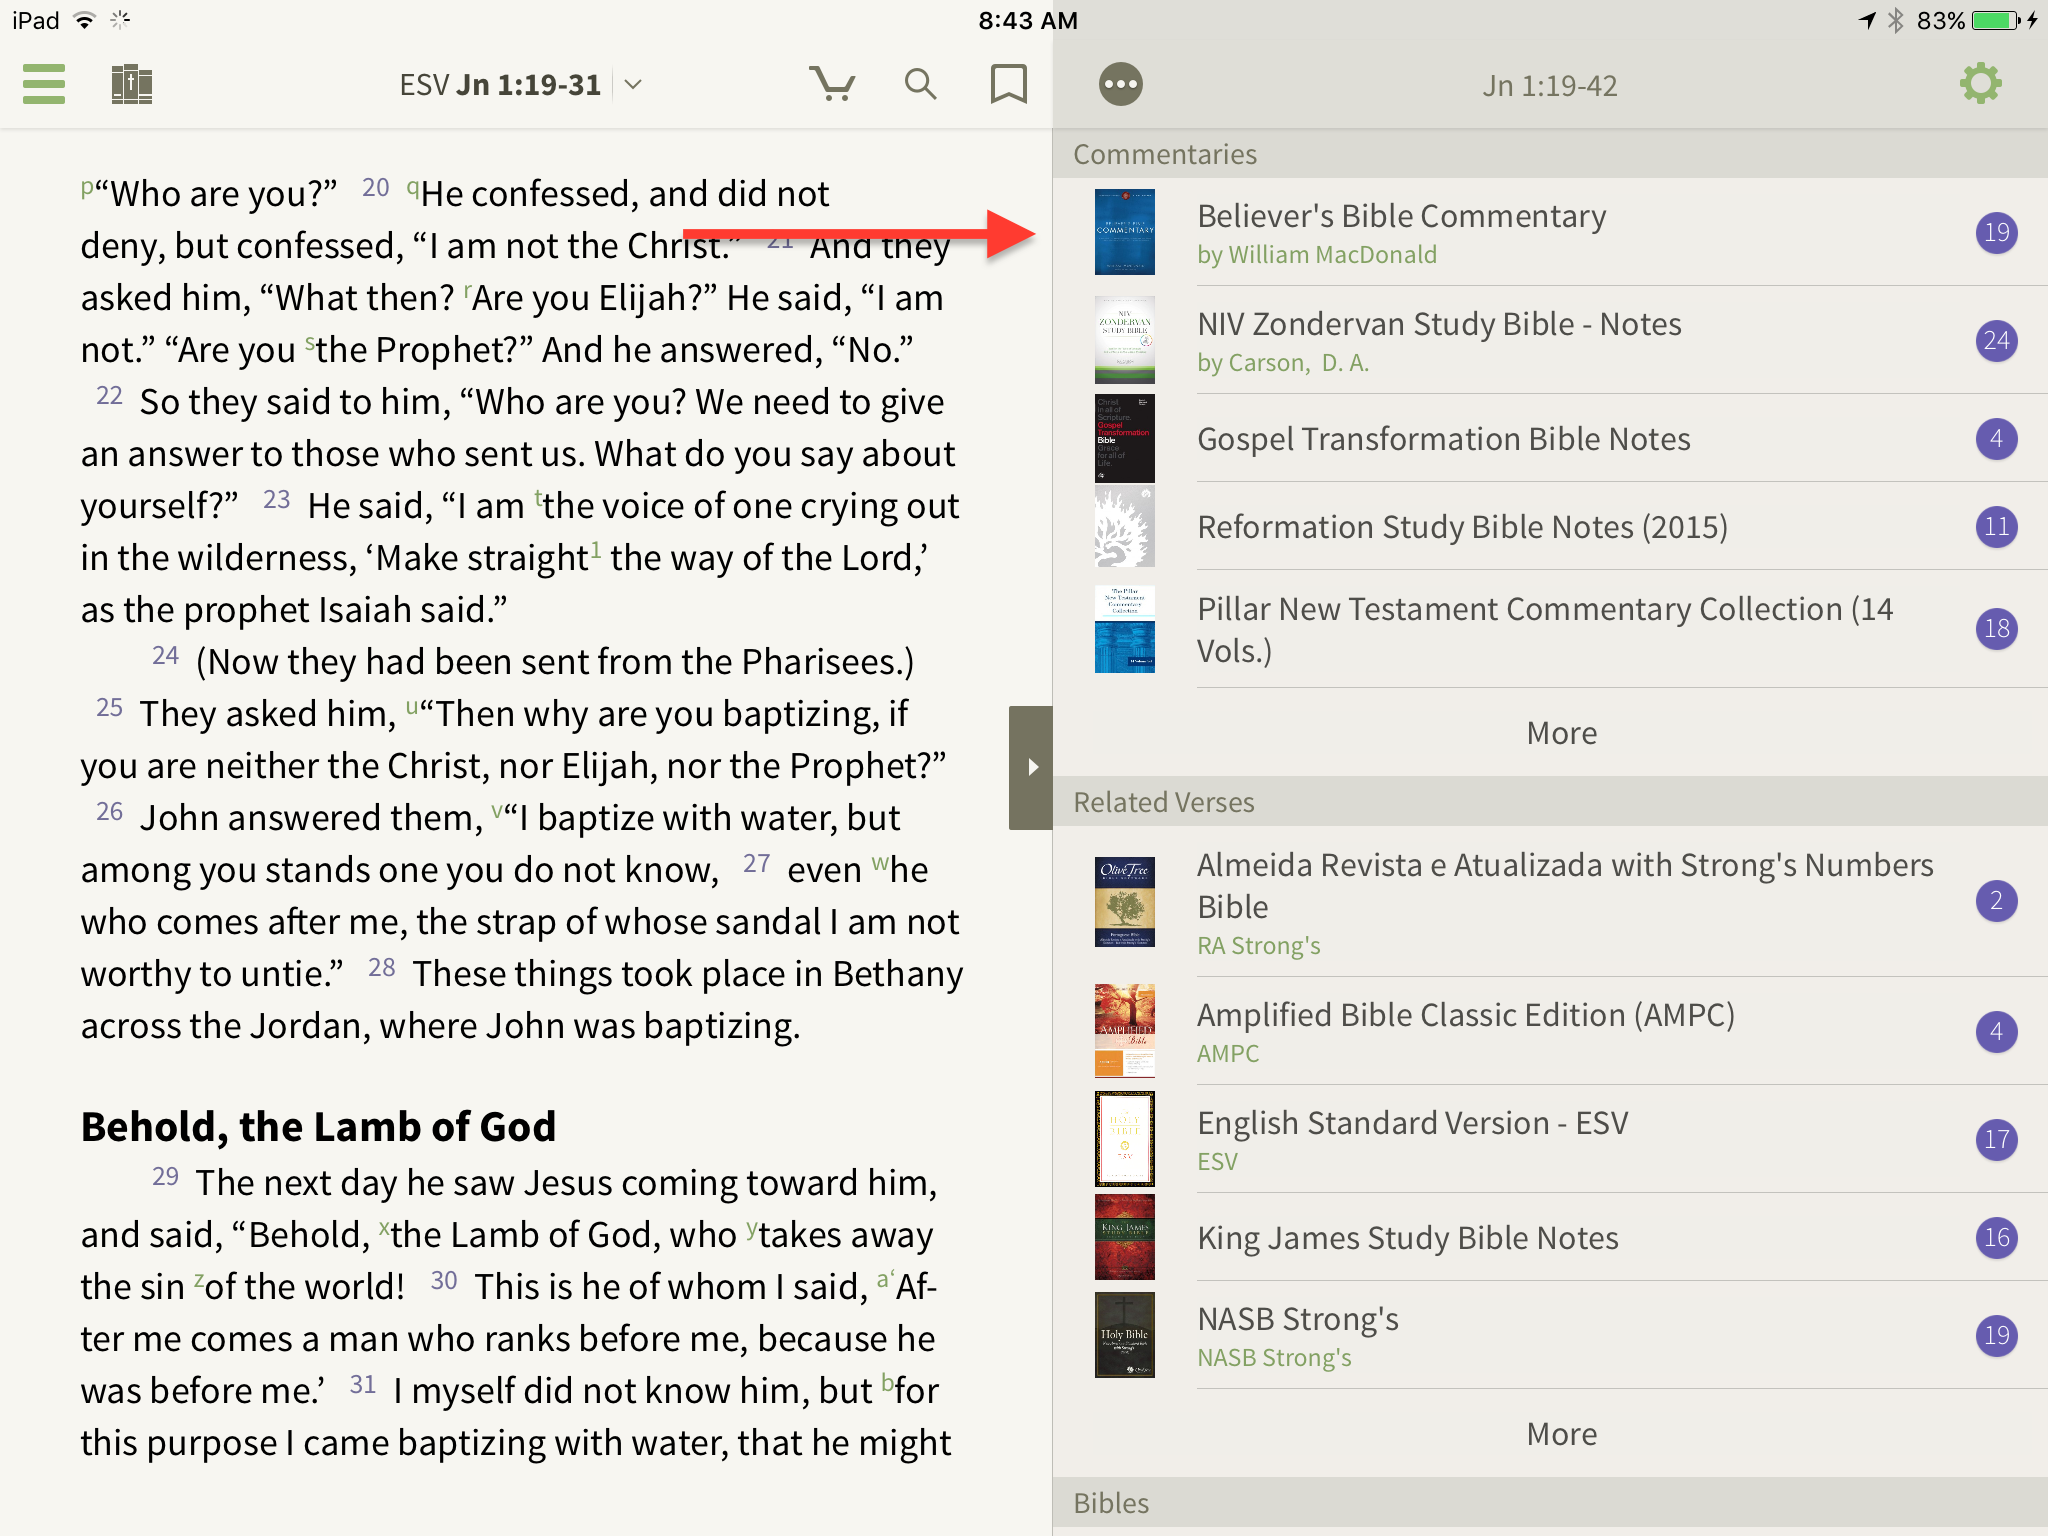 Windows rg edition - The Bible Study App Also Keeps Up With The Scripture Passage You Re Reading In The Main Window With Sync Scrolling This Means That As You Move Along In The